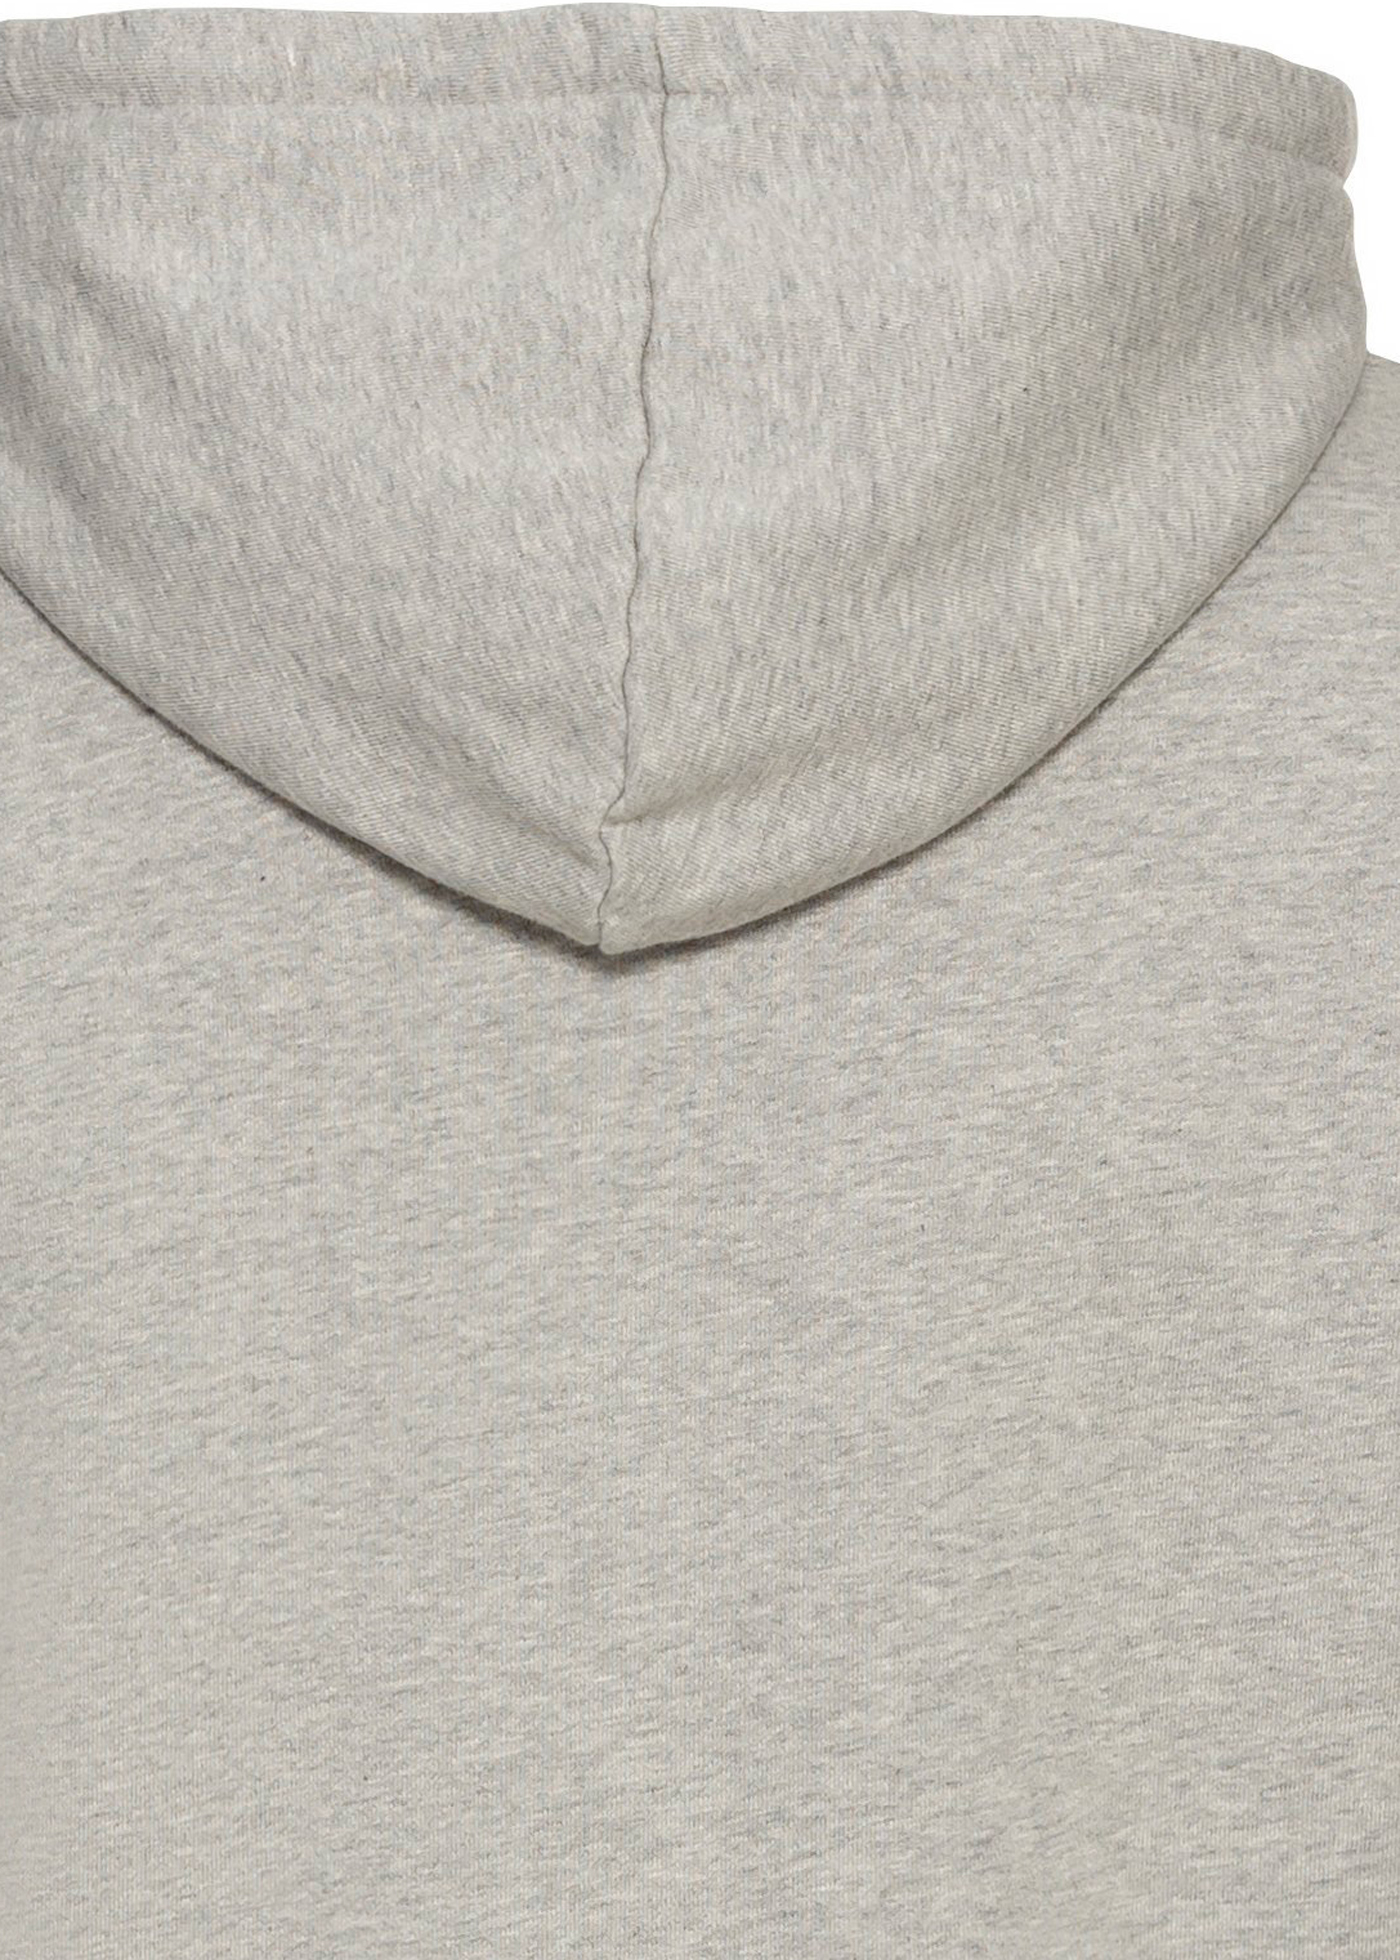 NAVY FOX PATCH CLASSIC HOODIE image number 3